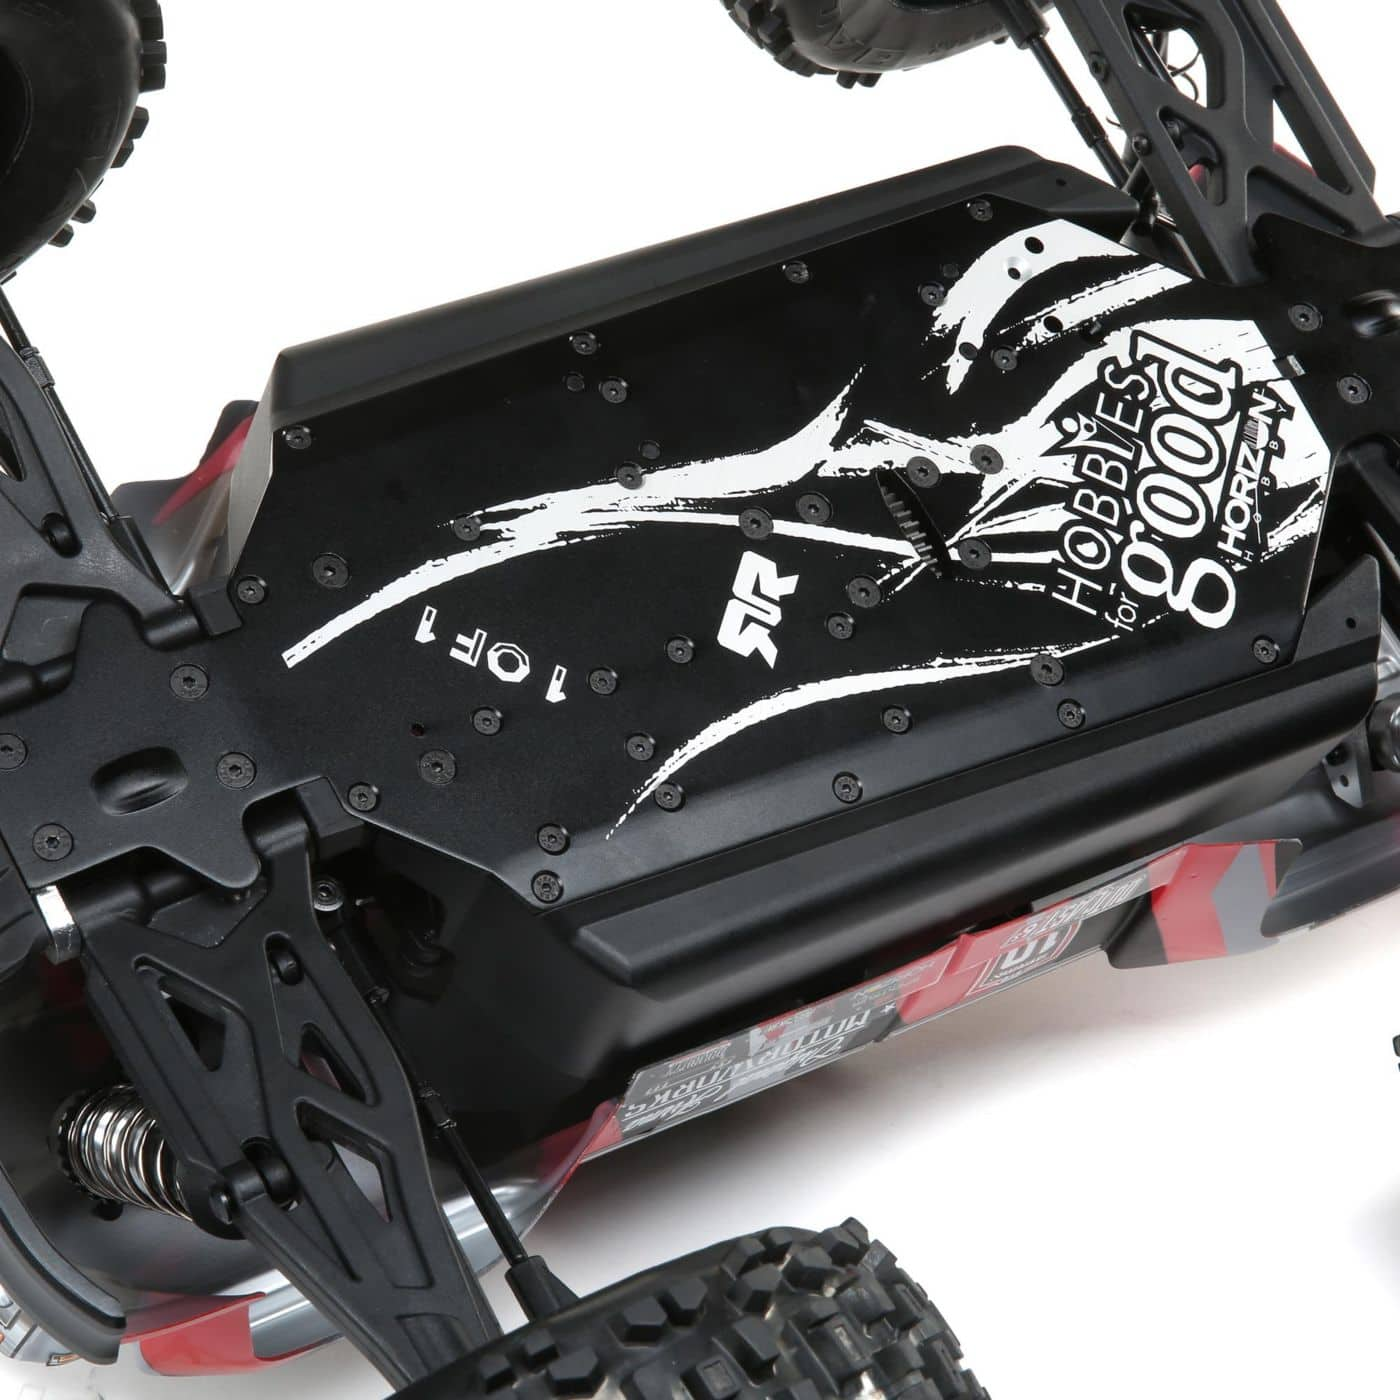 ARRMA Outcast 6S 10th Anniversary Edition - Chassis Detail